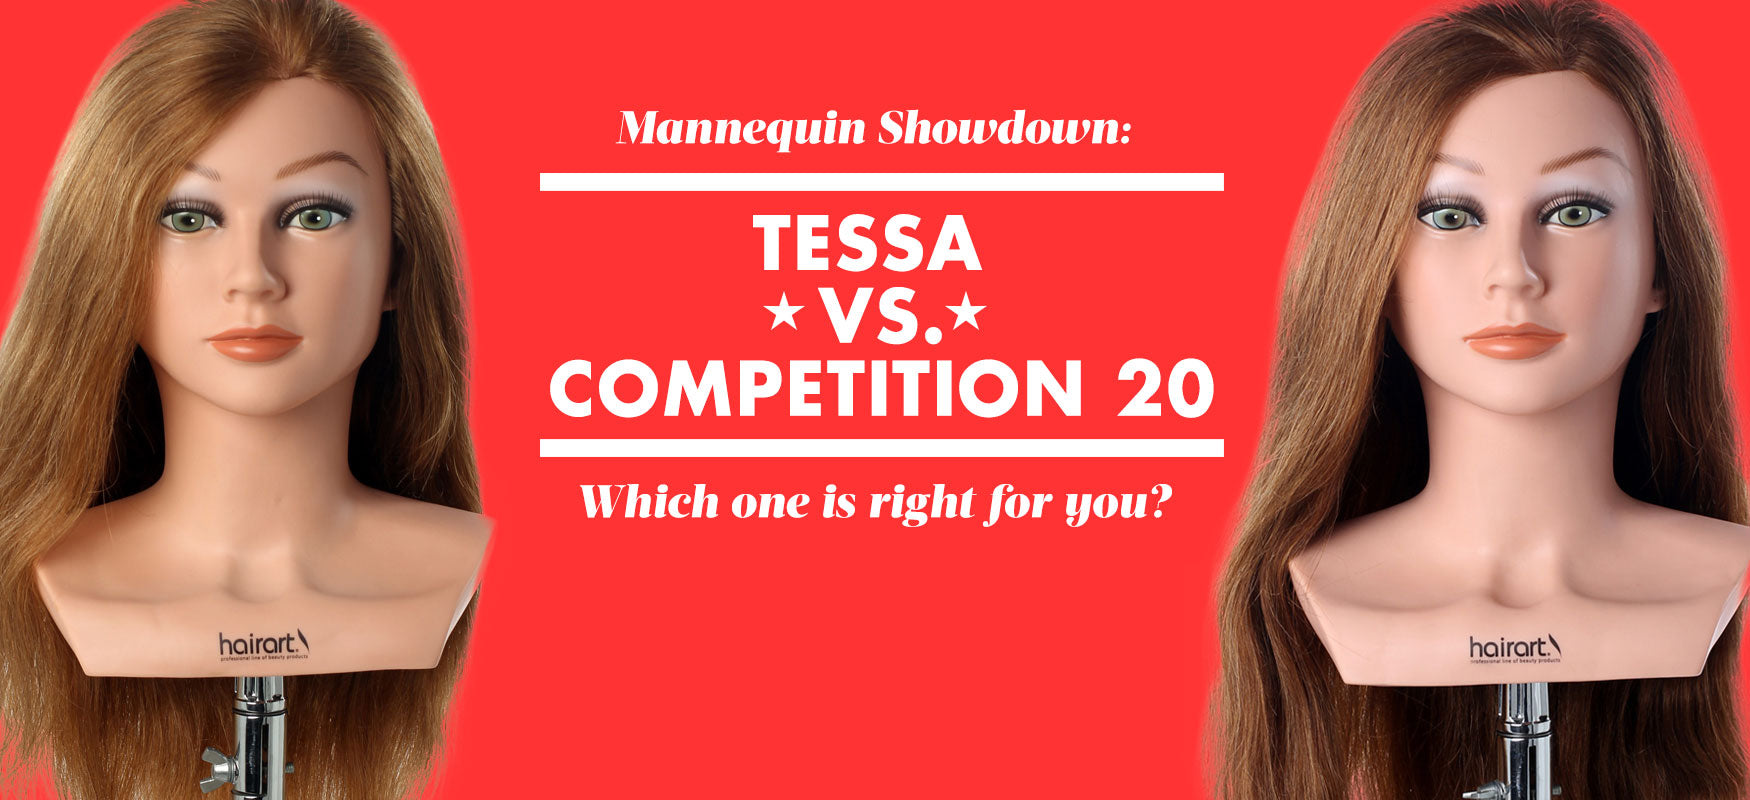 Tessa vs. Competition 20 Human Hair Mannequin